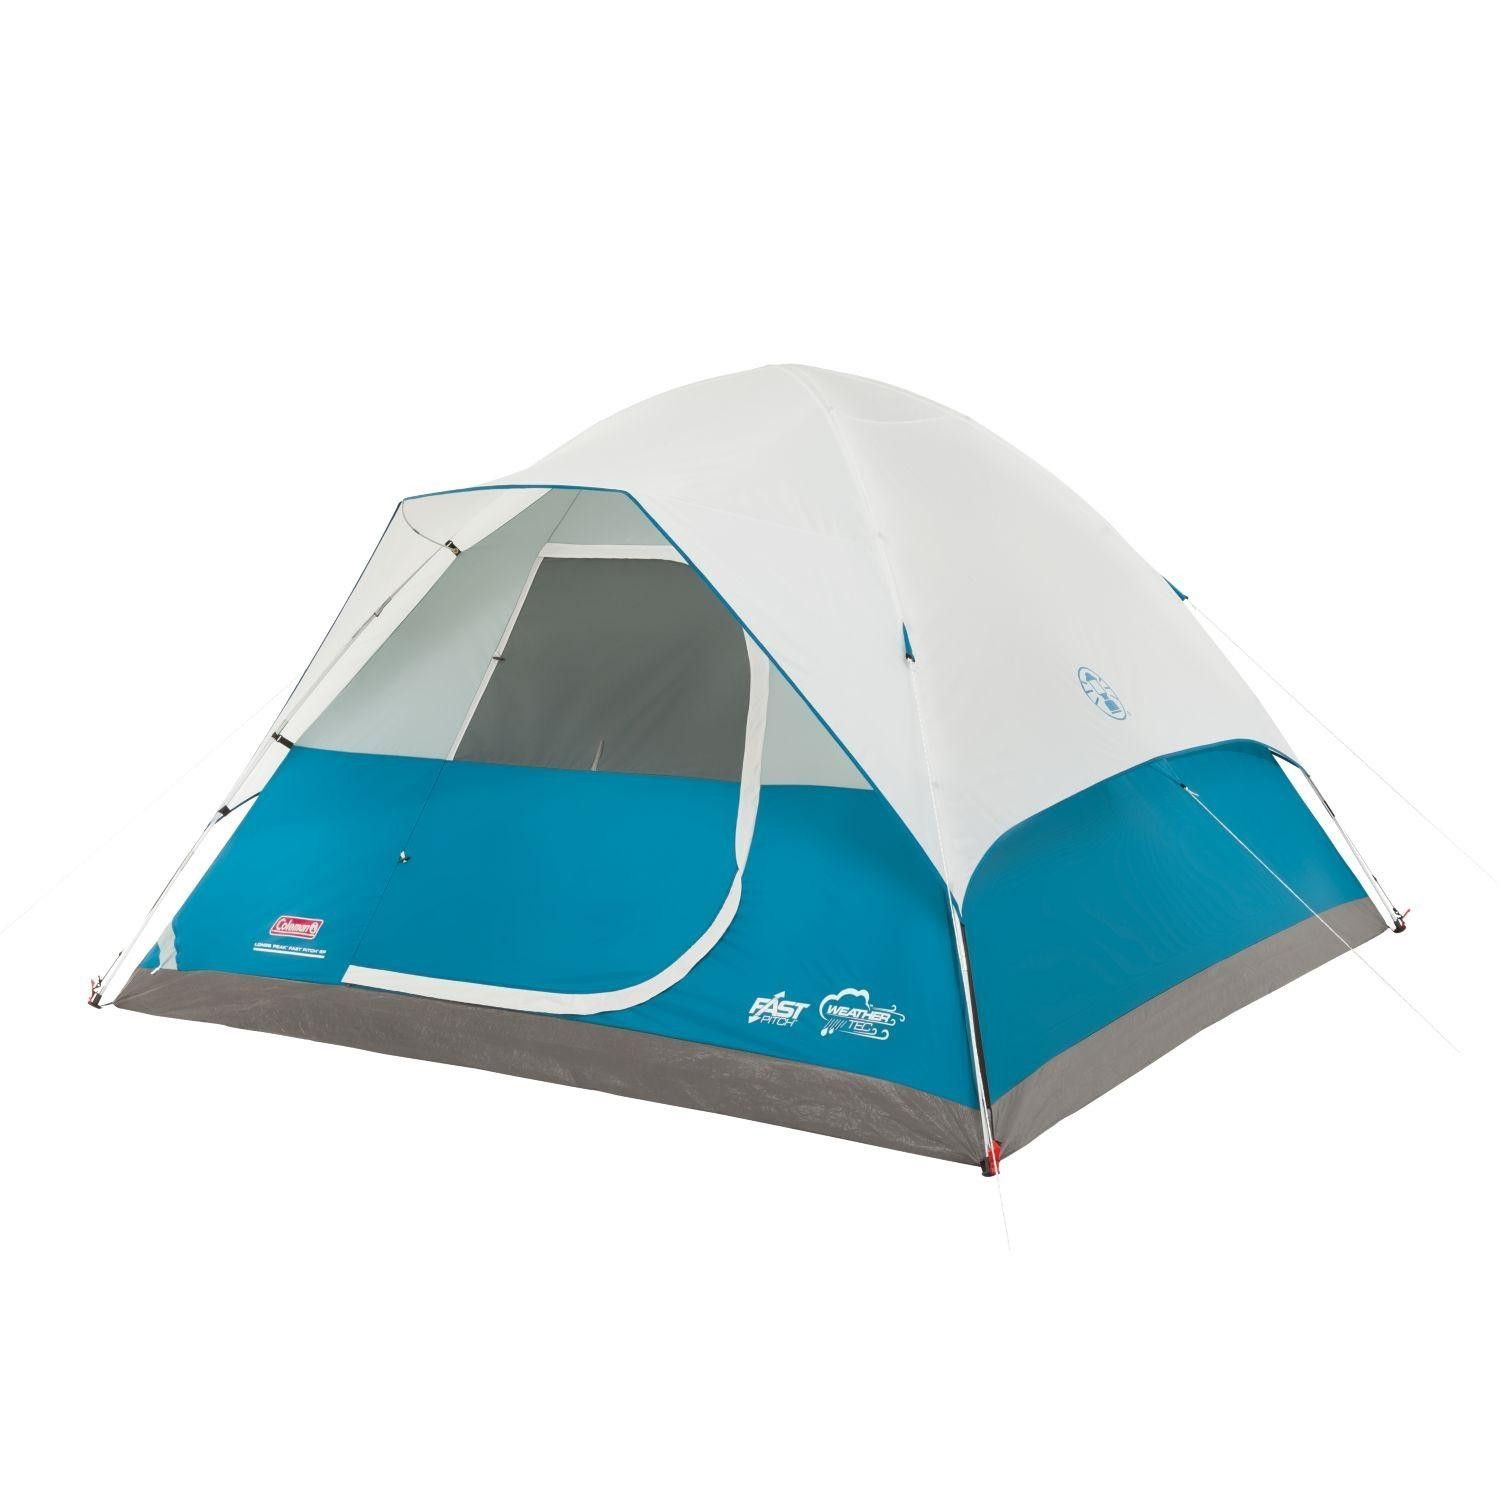 Coleman Longs Peak 6 Person Fast Pitch Dome Tent  sc 1 st  Pinterest & Coleman Longs Peak 6 Person Fast Pitch Dome Tent | tents for all ...